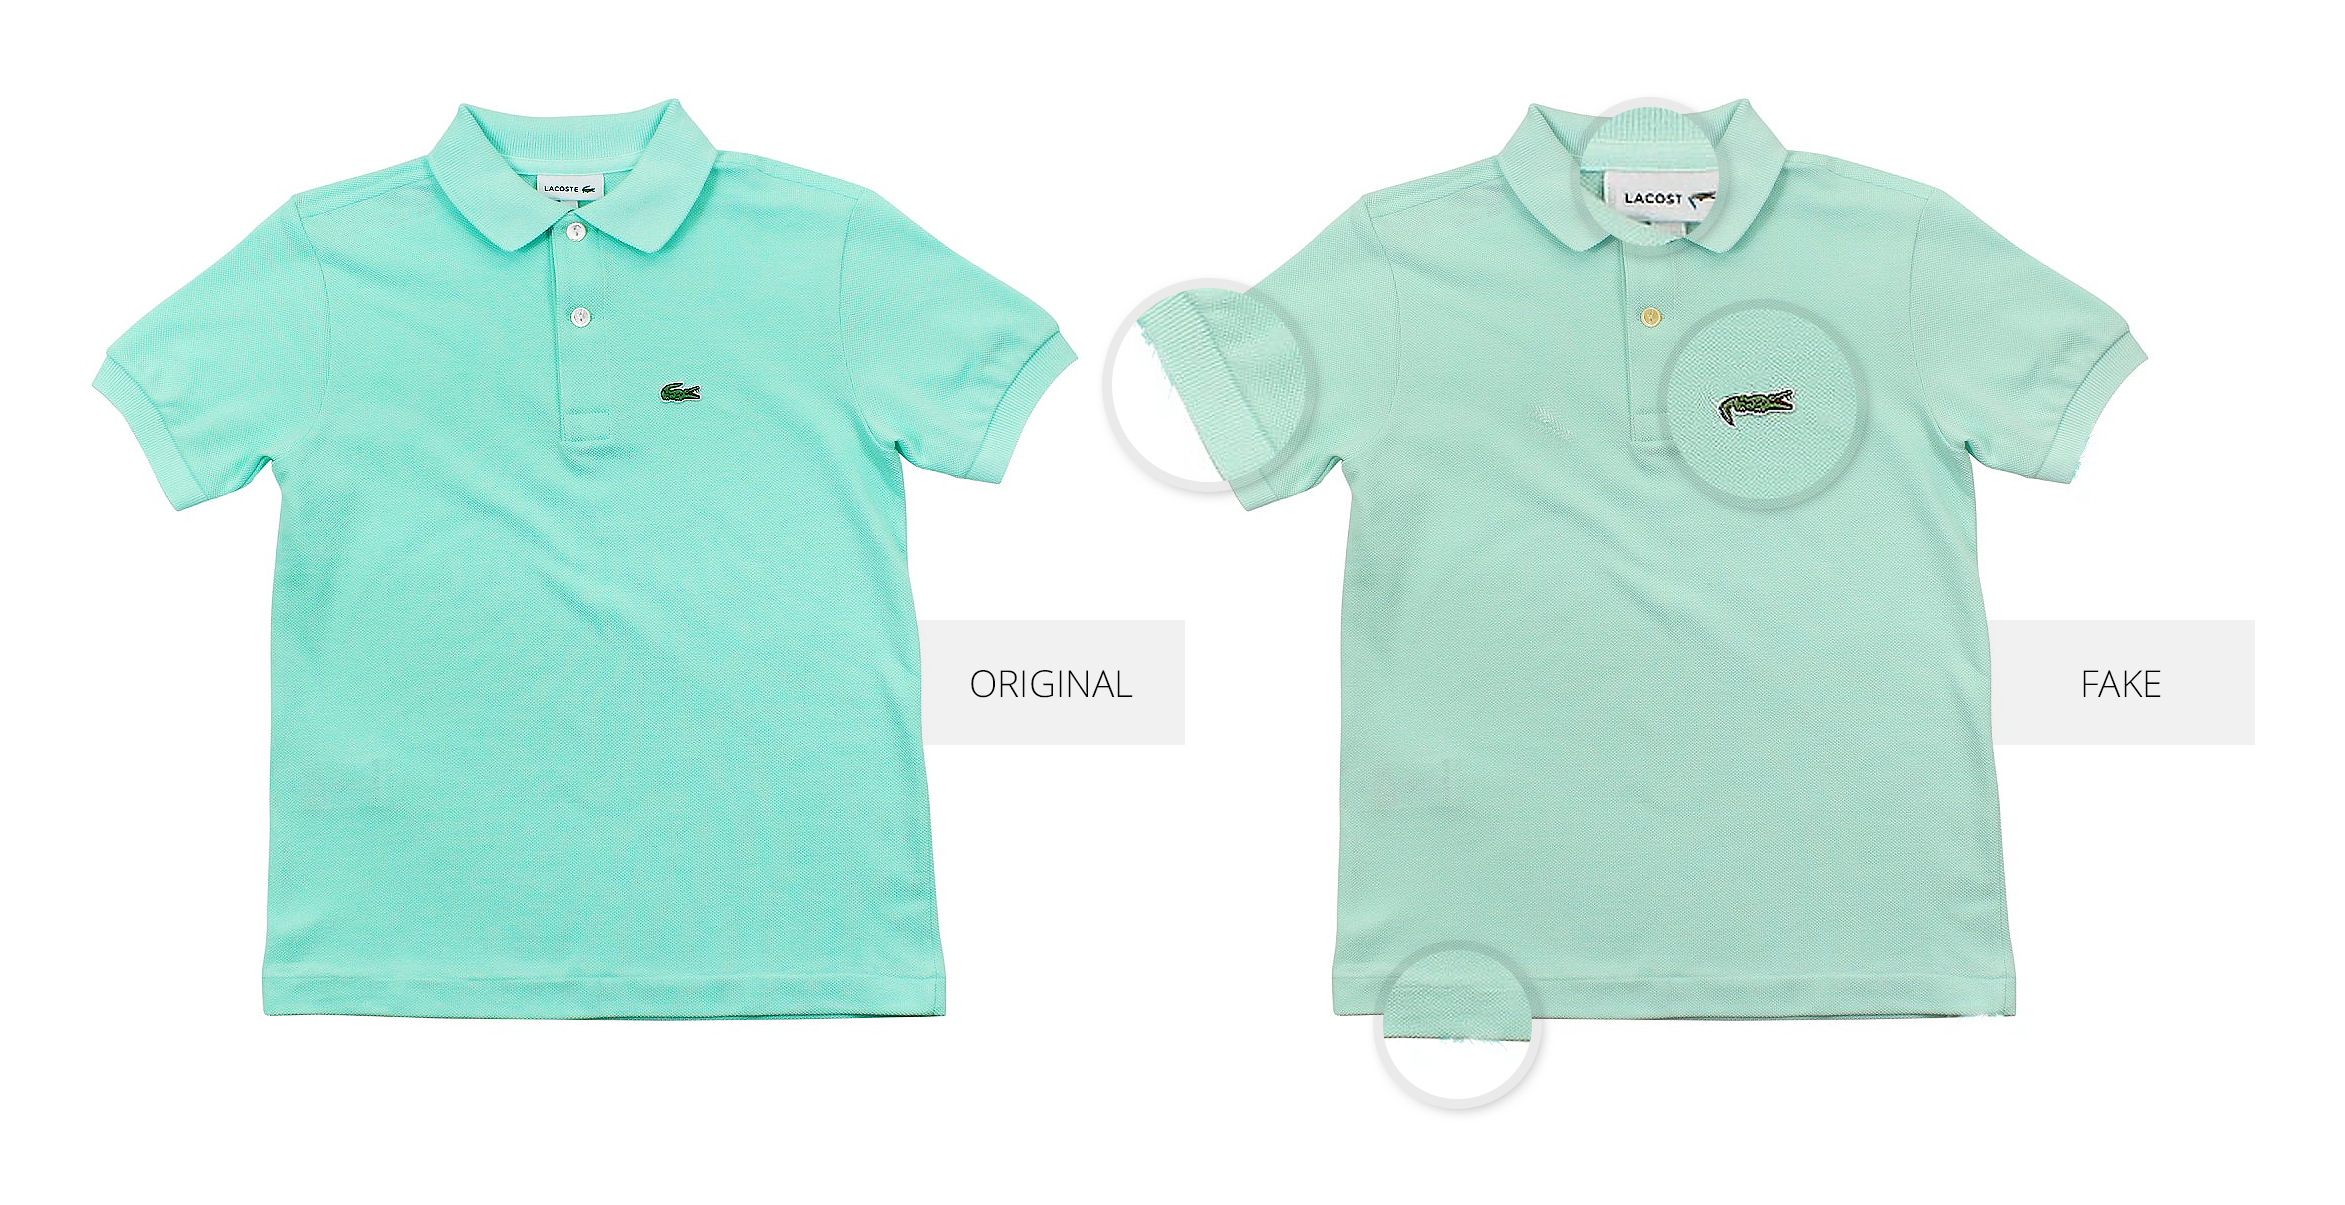 ProjectOriginal Polo Shirt Free Lacoste Lance Fake Vs nN0kwXZO8P